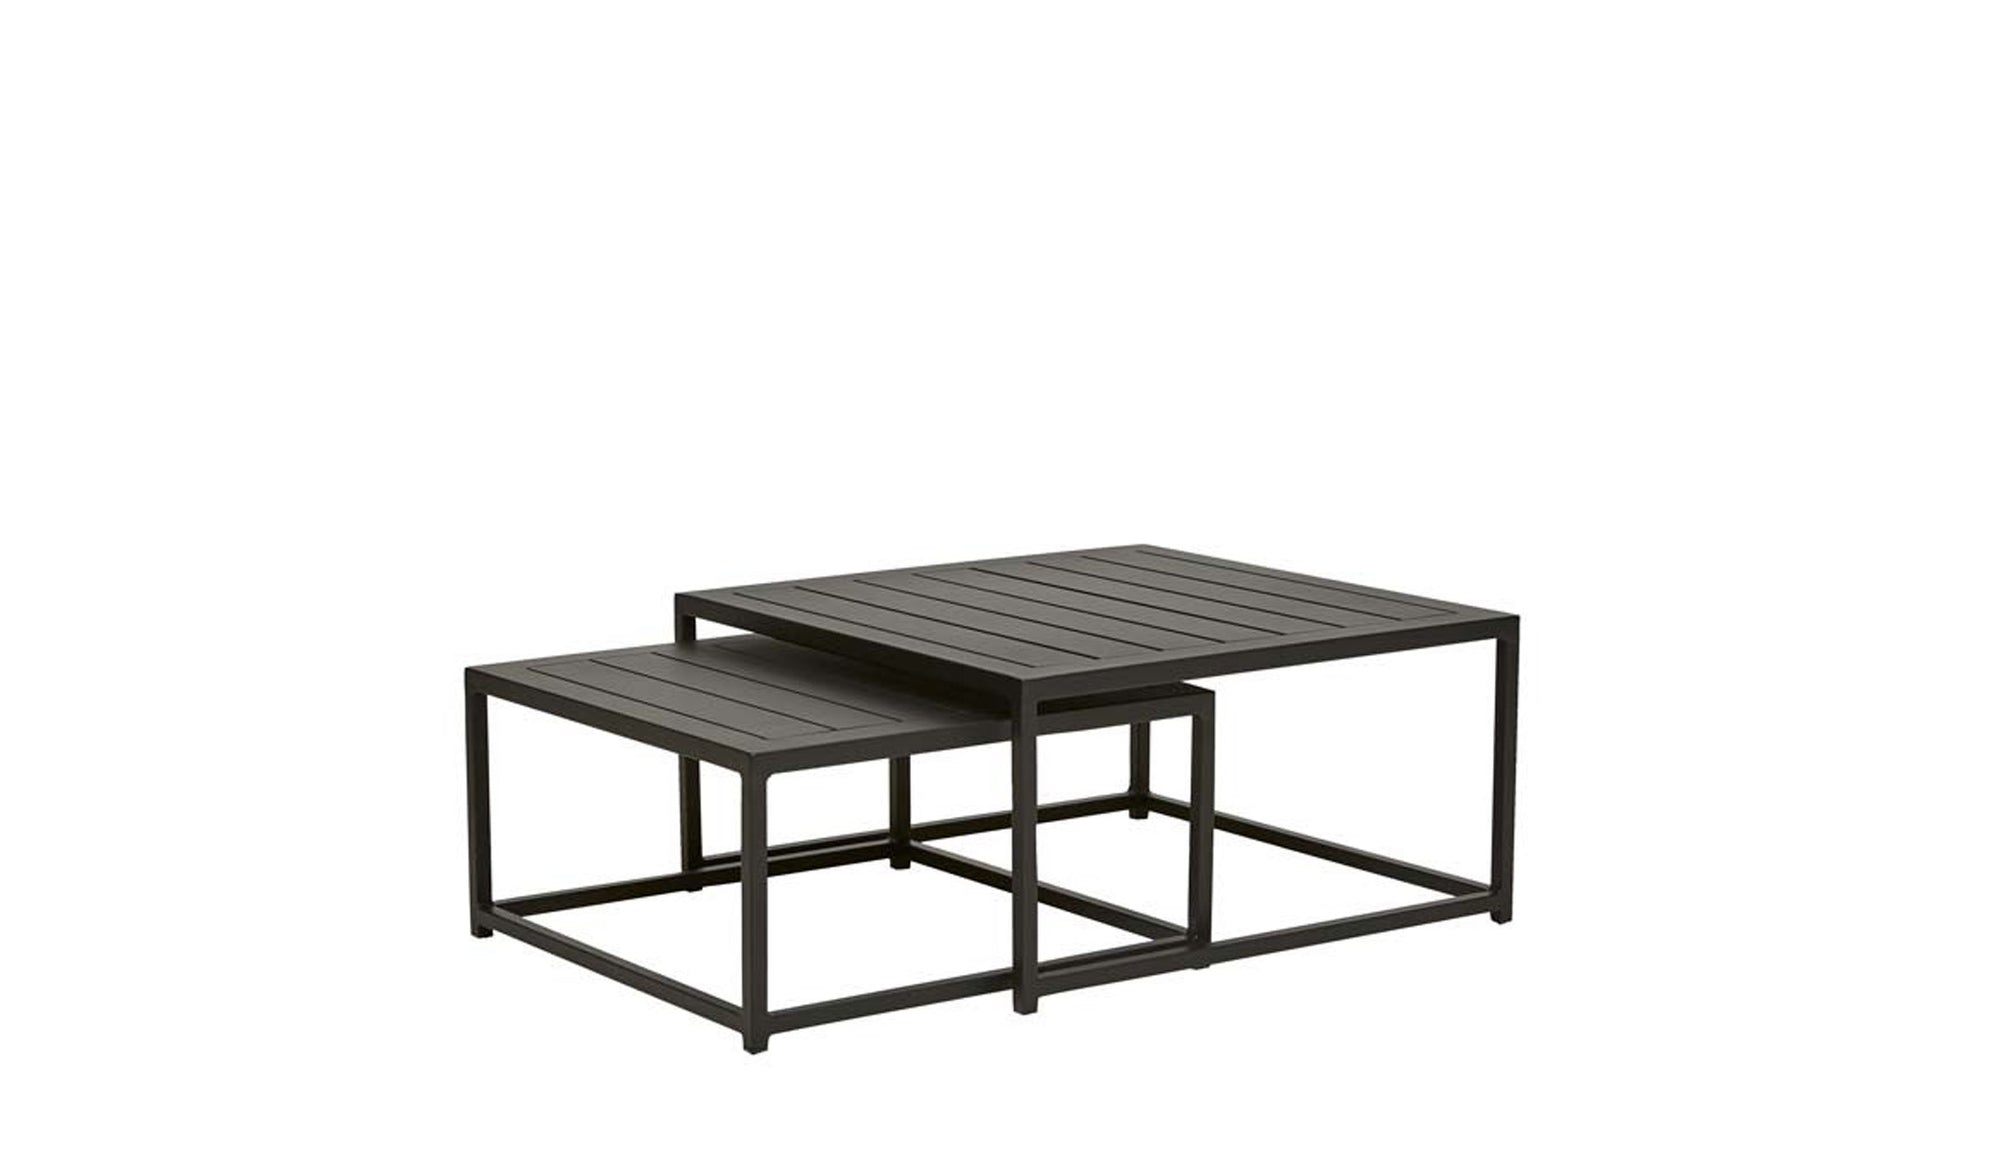 Aruba Square Nest of 2 Coffee Tables